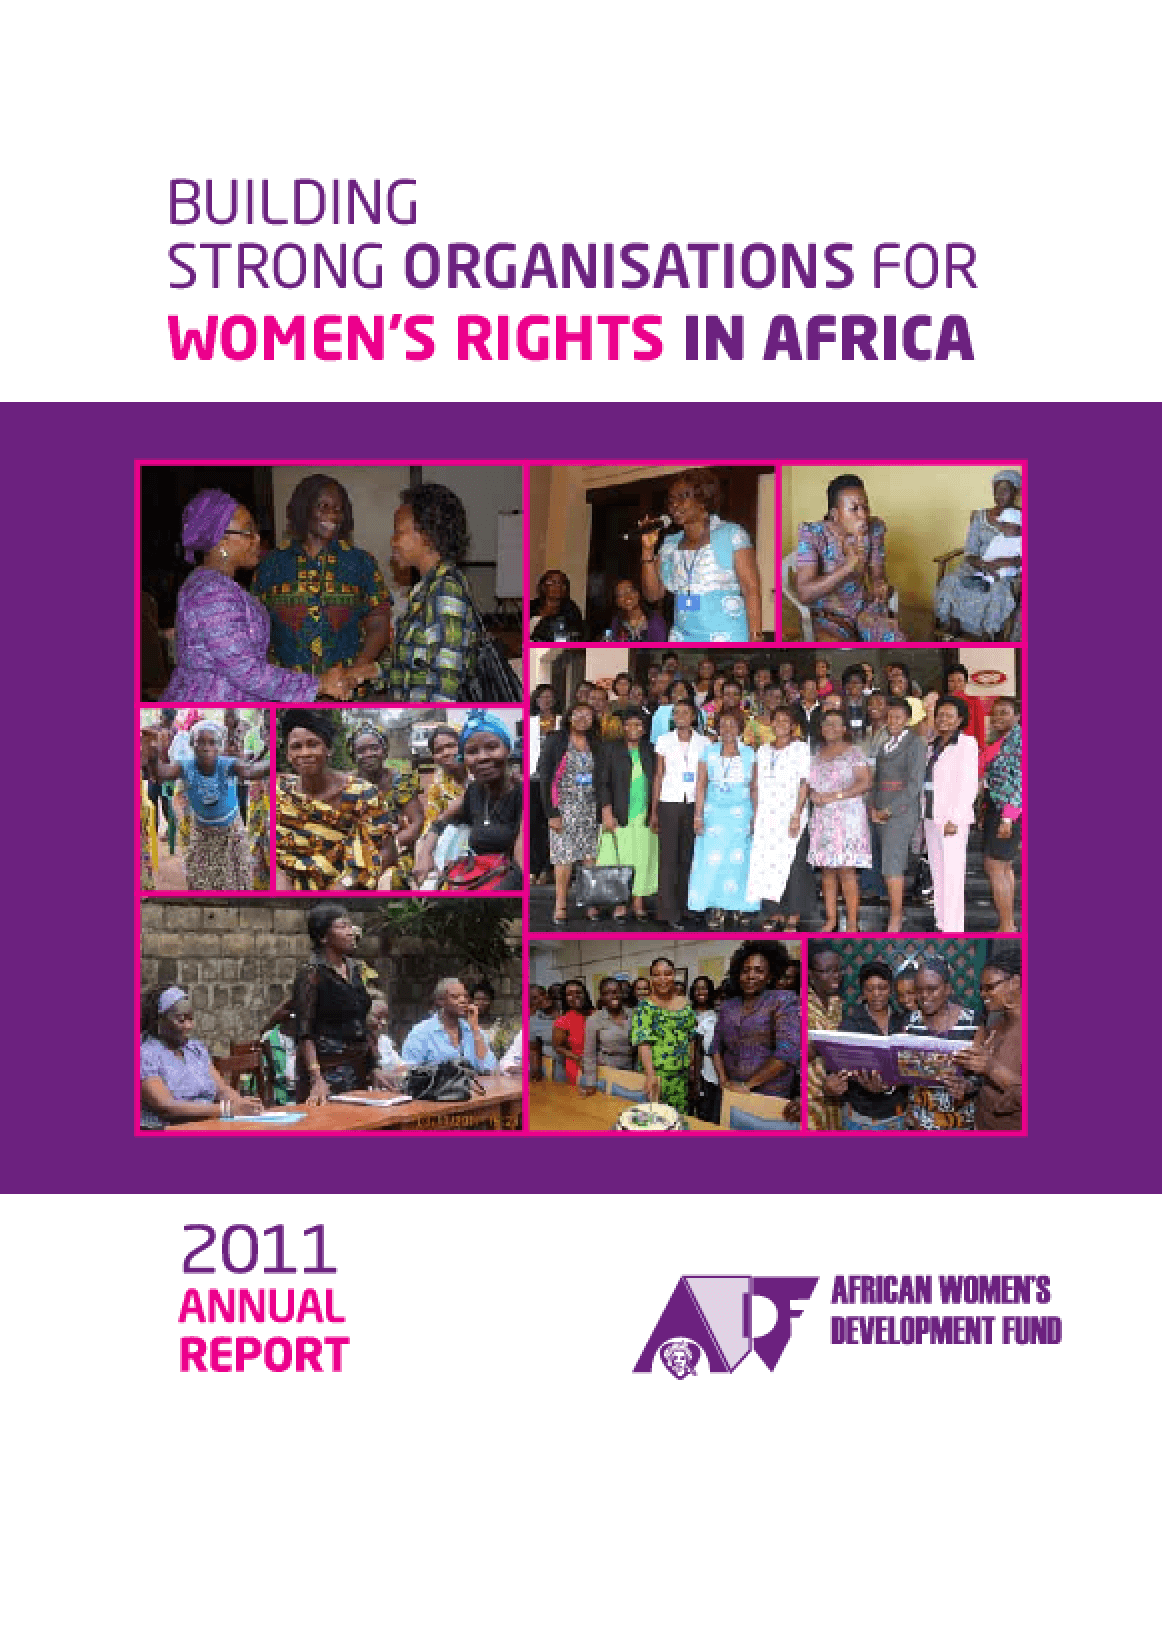 Annual Report 2011 Building Strong Organisations for Women's Rights in Africa